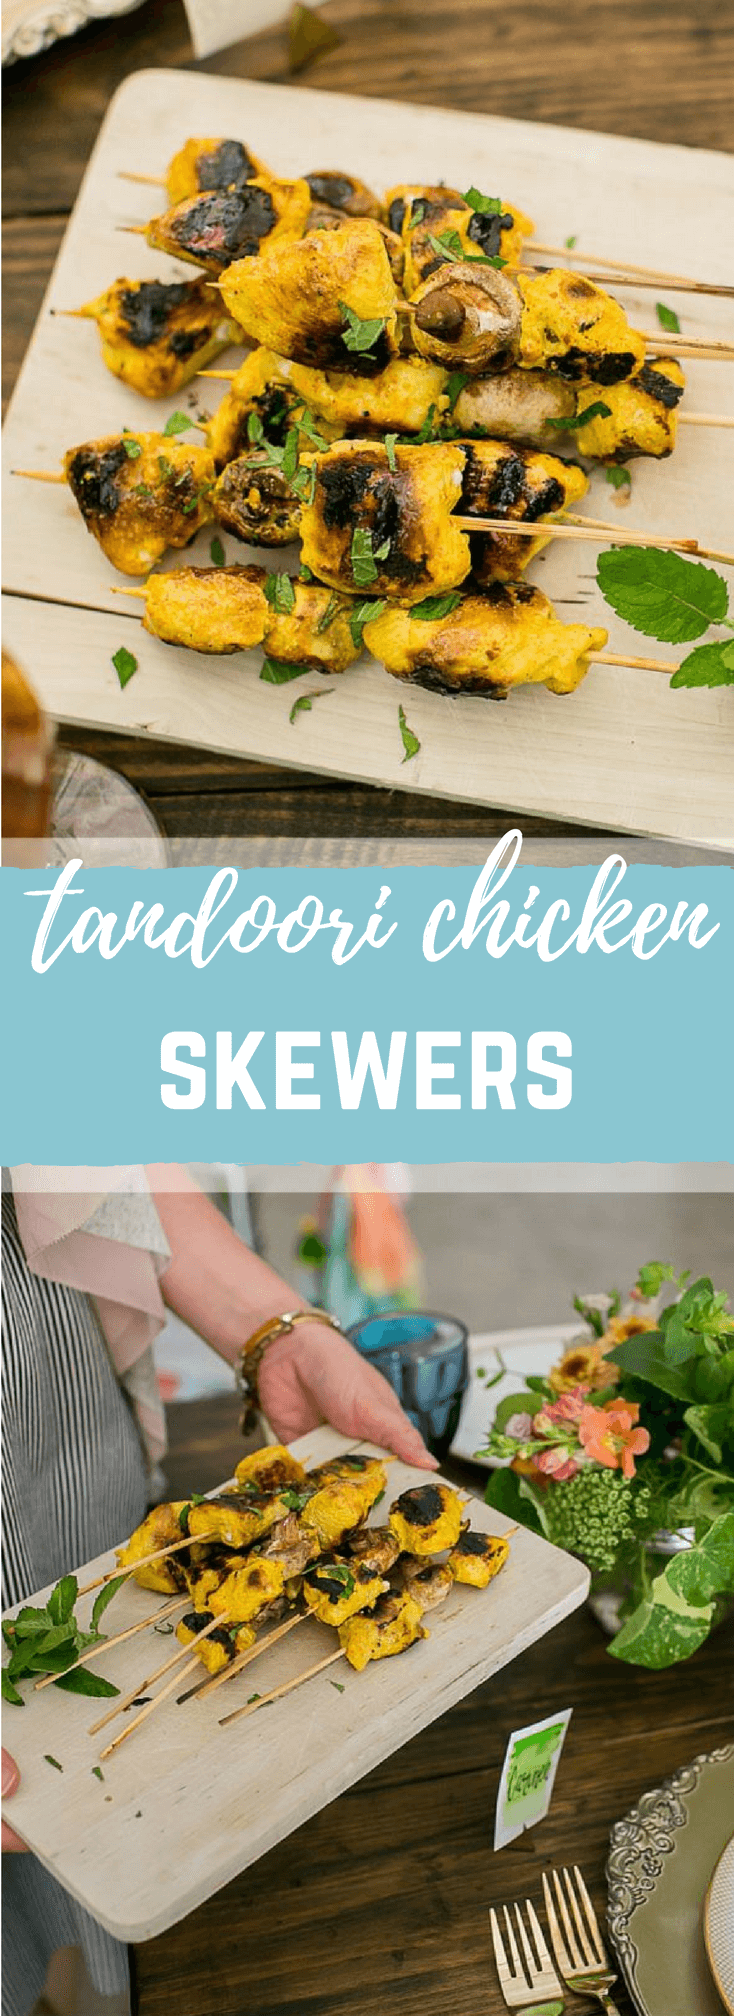 These Tandoori Chicken Skewers are juicy, moist and full of that bold Indian flavor. Love this fresh way to serve chicken. Serve skewers with warm garlicky naan bread.